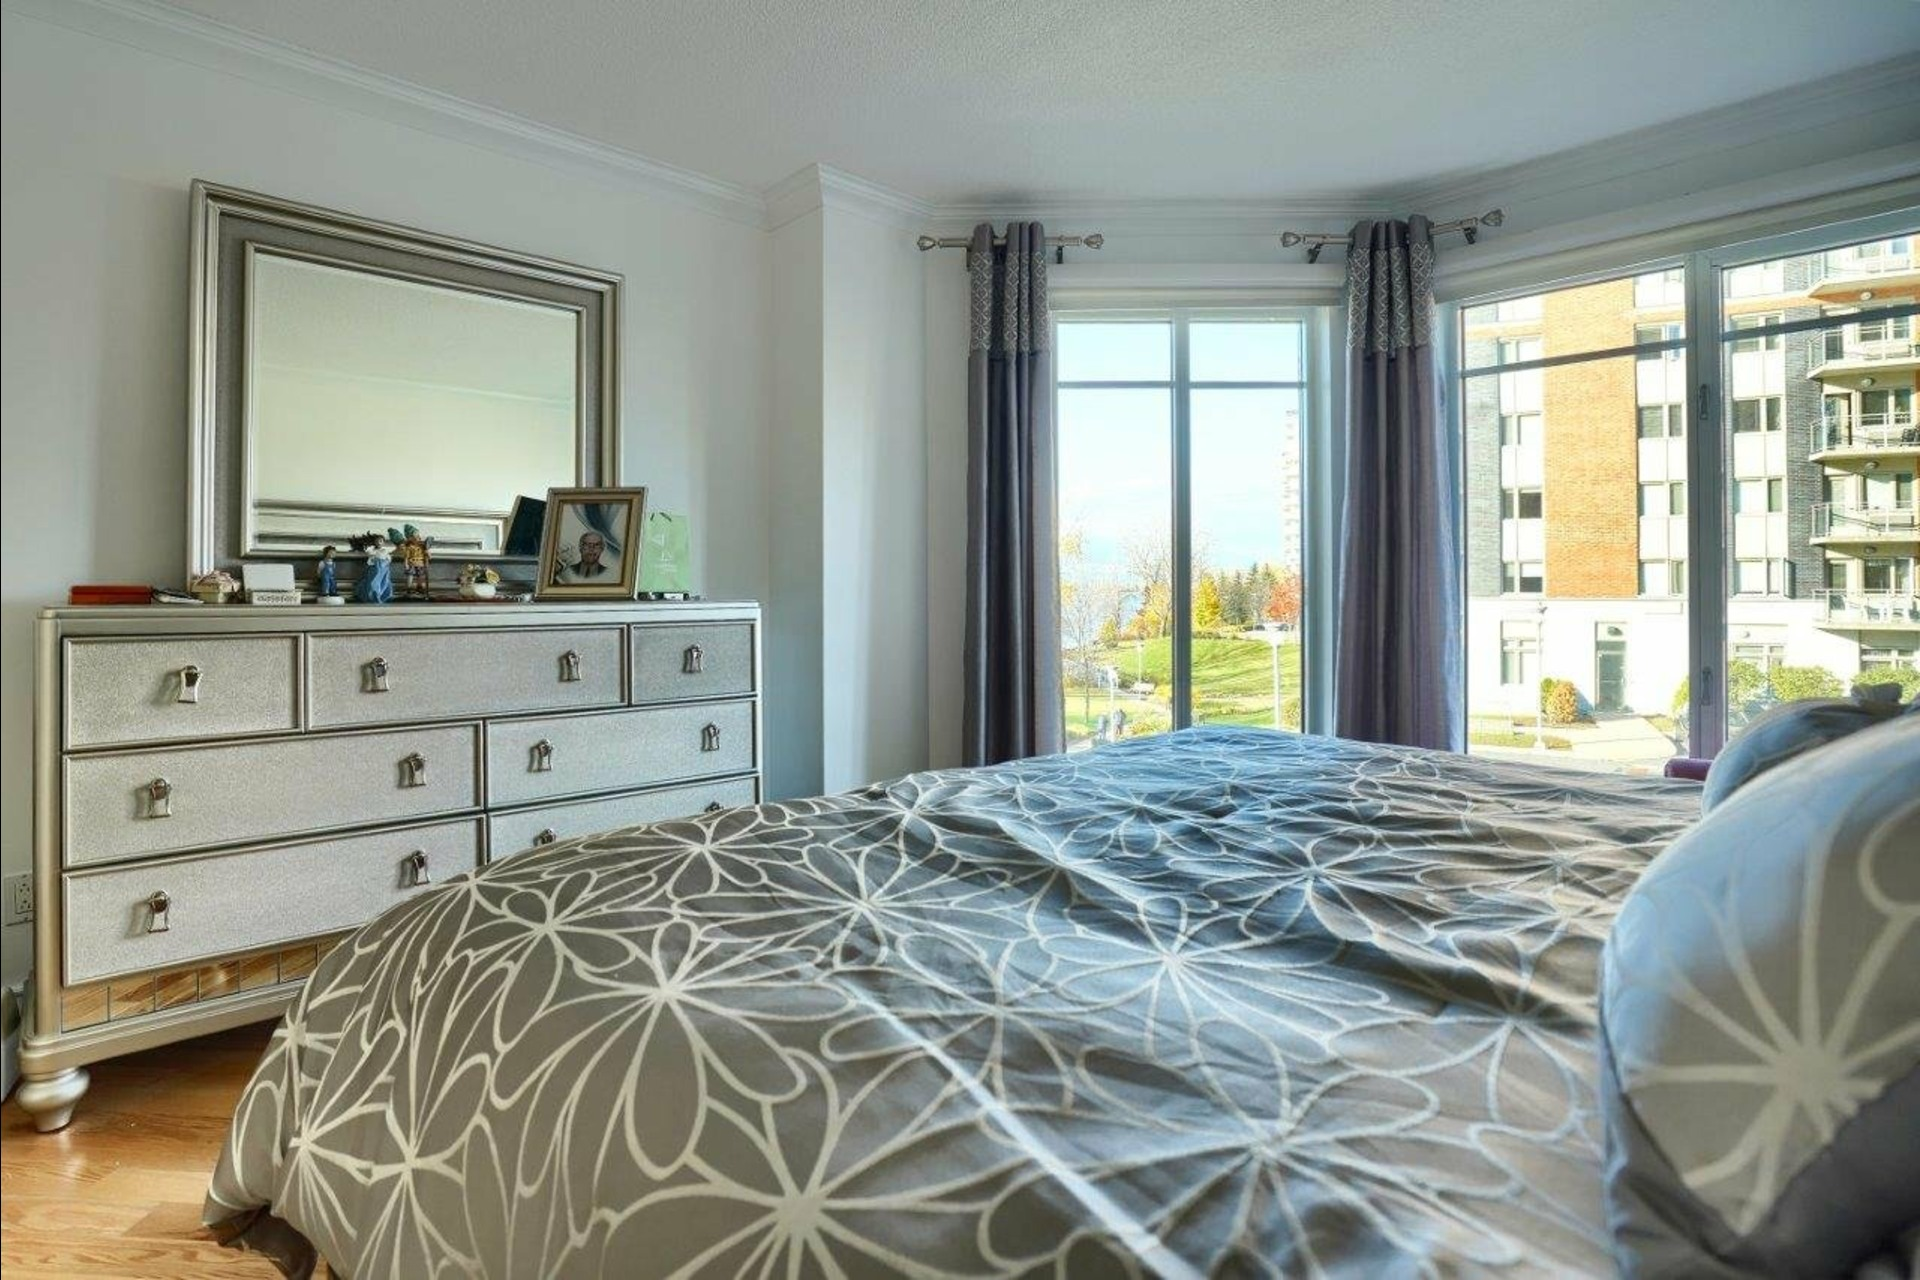 image 16 - Apartment For sale Brossard - 5 rooms